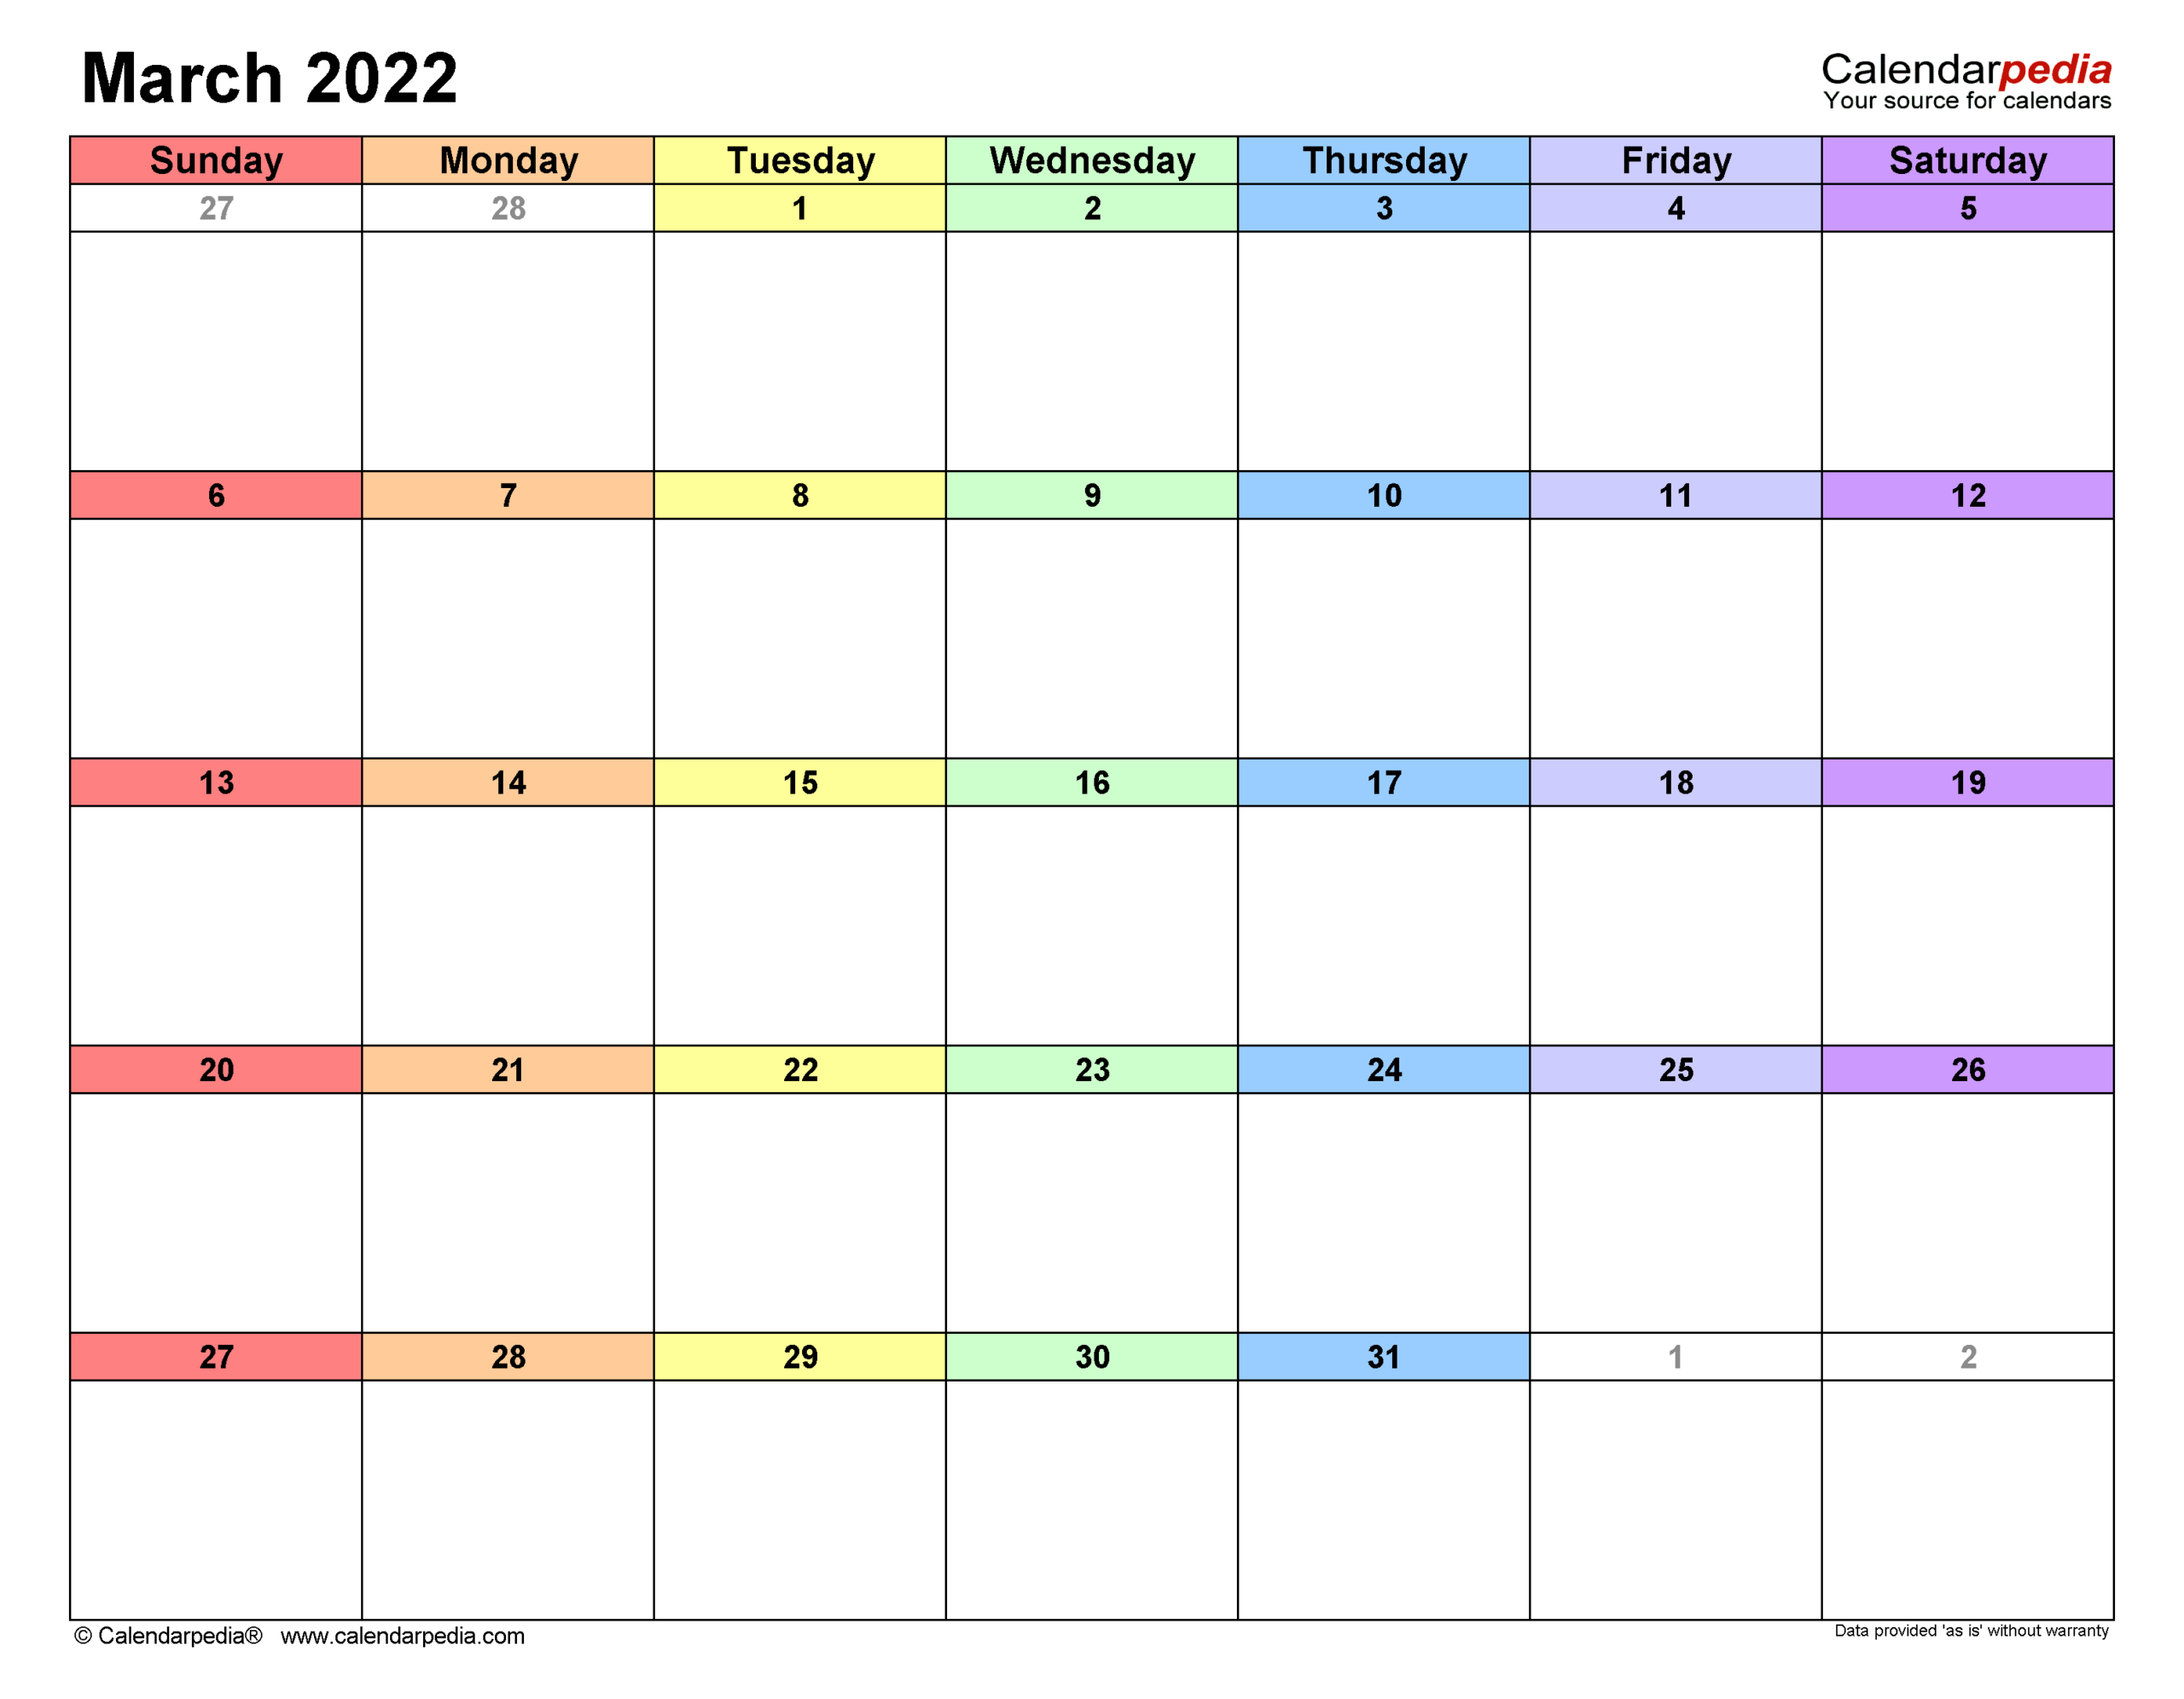 March 2022 Calendar   Templates For Word, Excel And Pdf inside March 2022 Calendar Printable